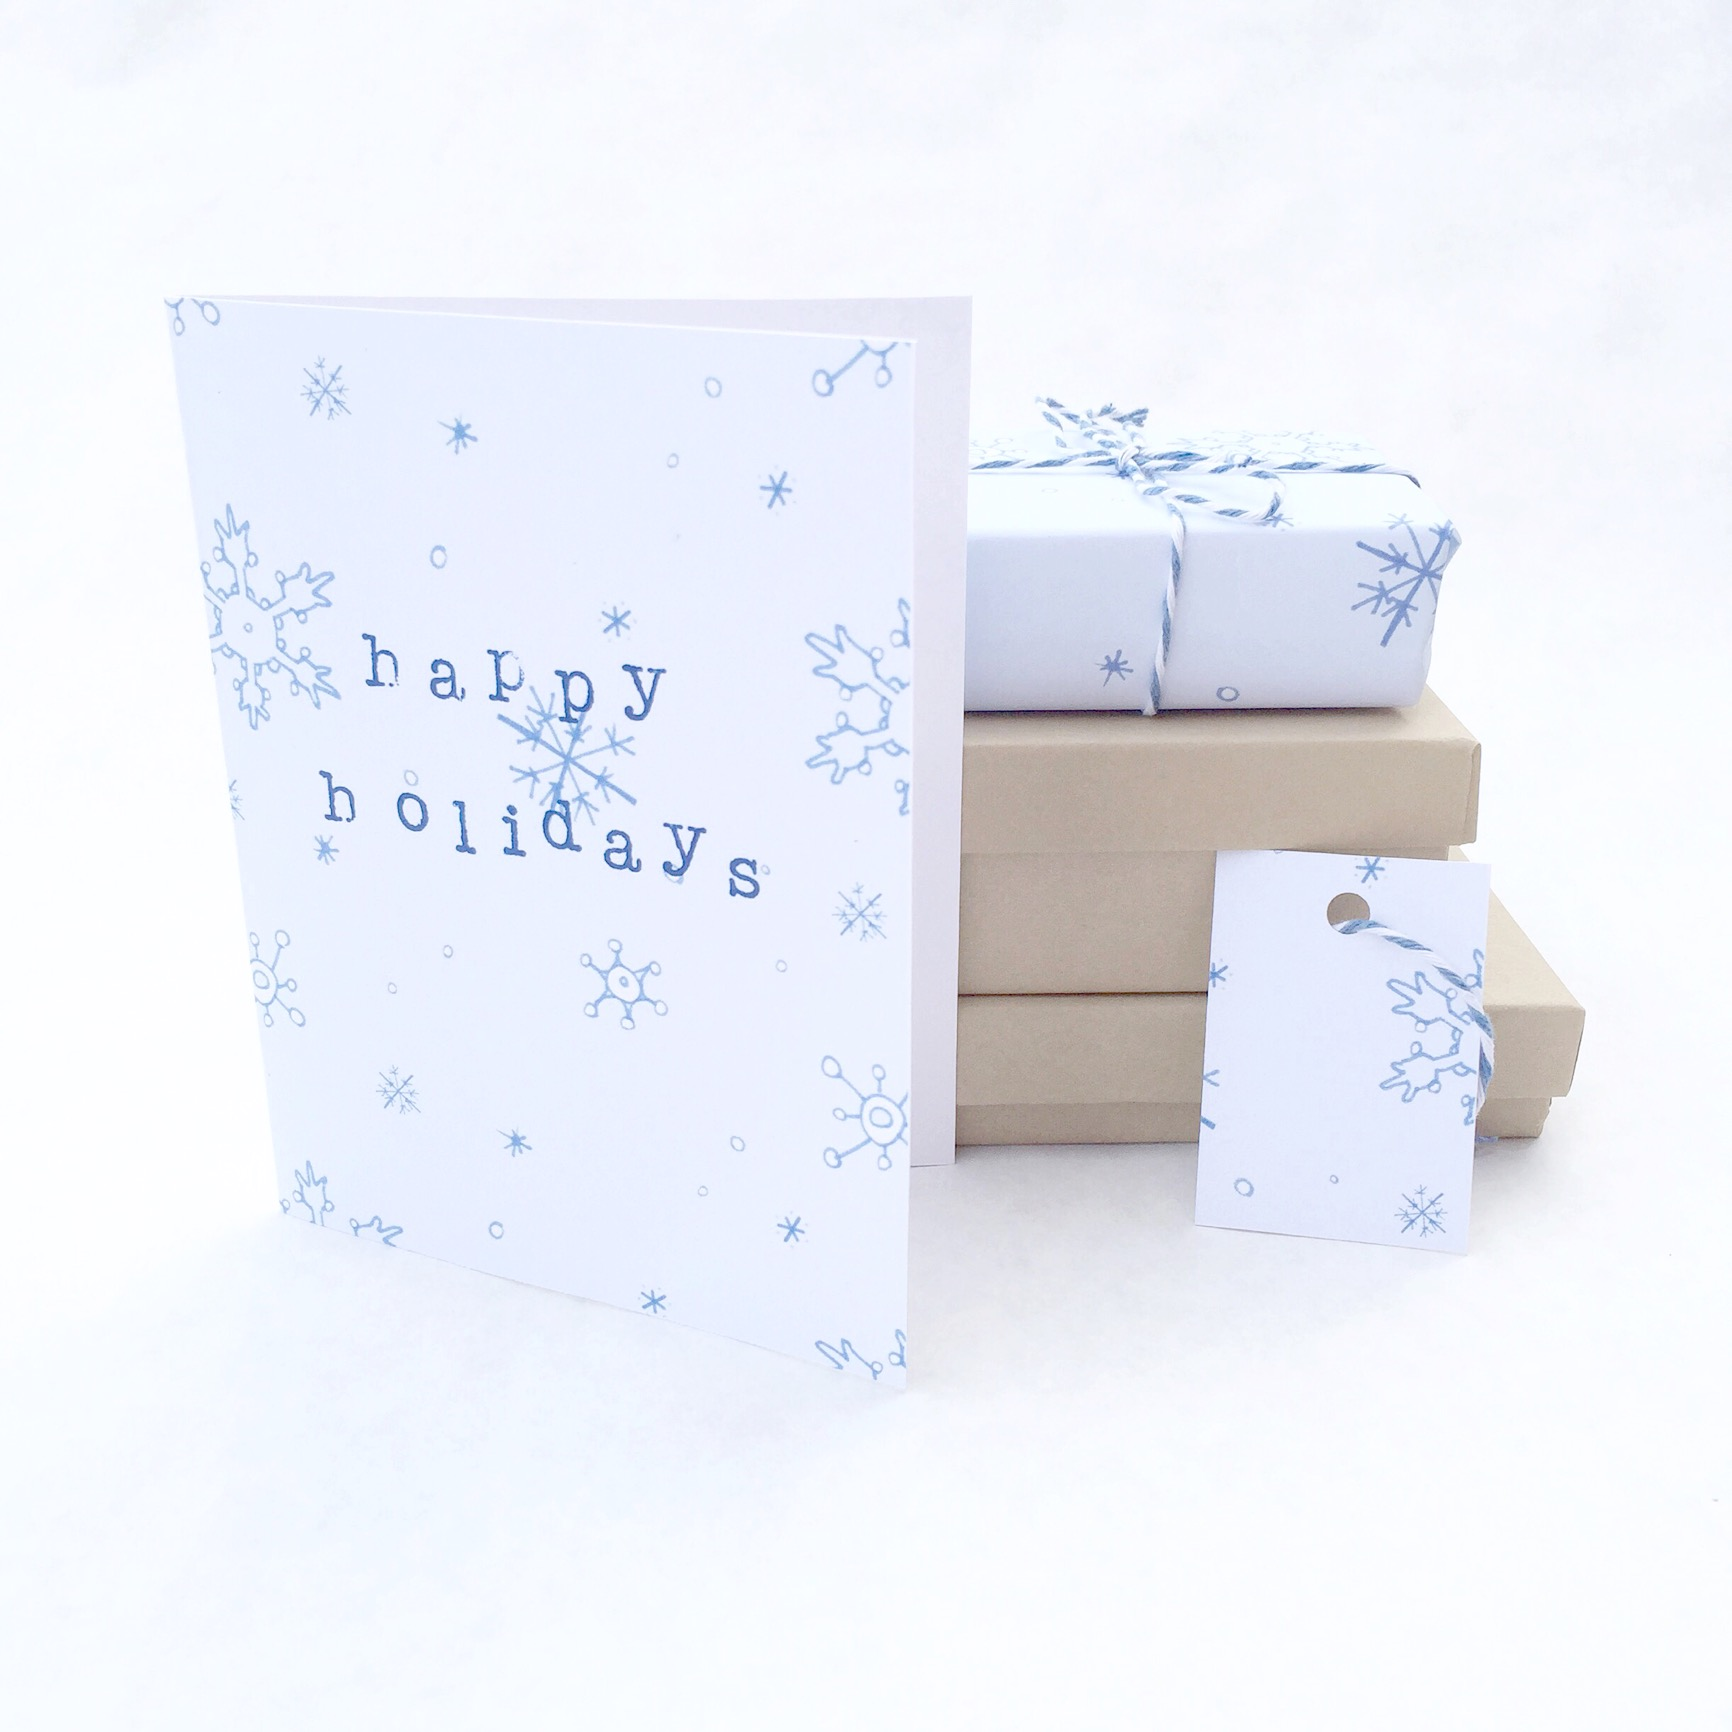 Snowflake Printable that you can Print at Home and Make Free Holiday Cards, Holiday Gift Tags, and Wrapping Paper | Homemade Christmas Gifts on the Pop Shop America DIY Blog